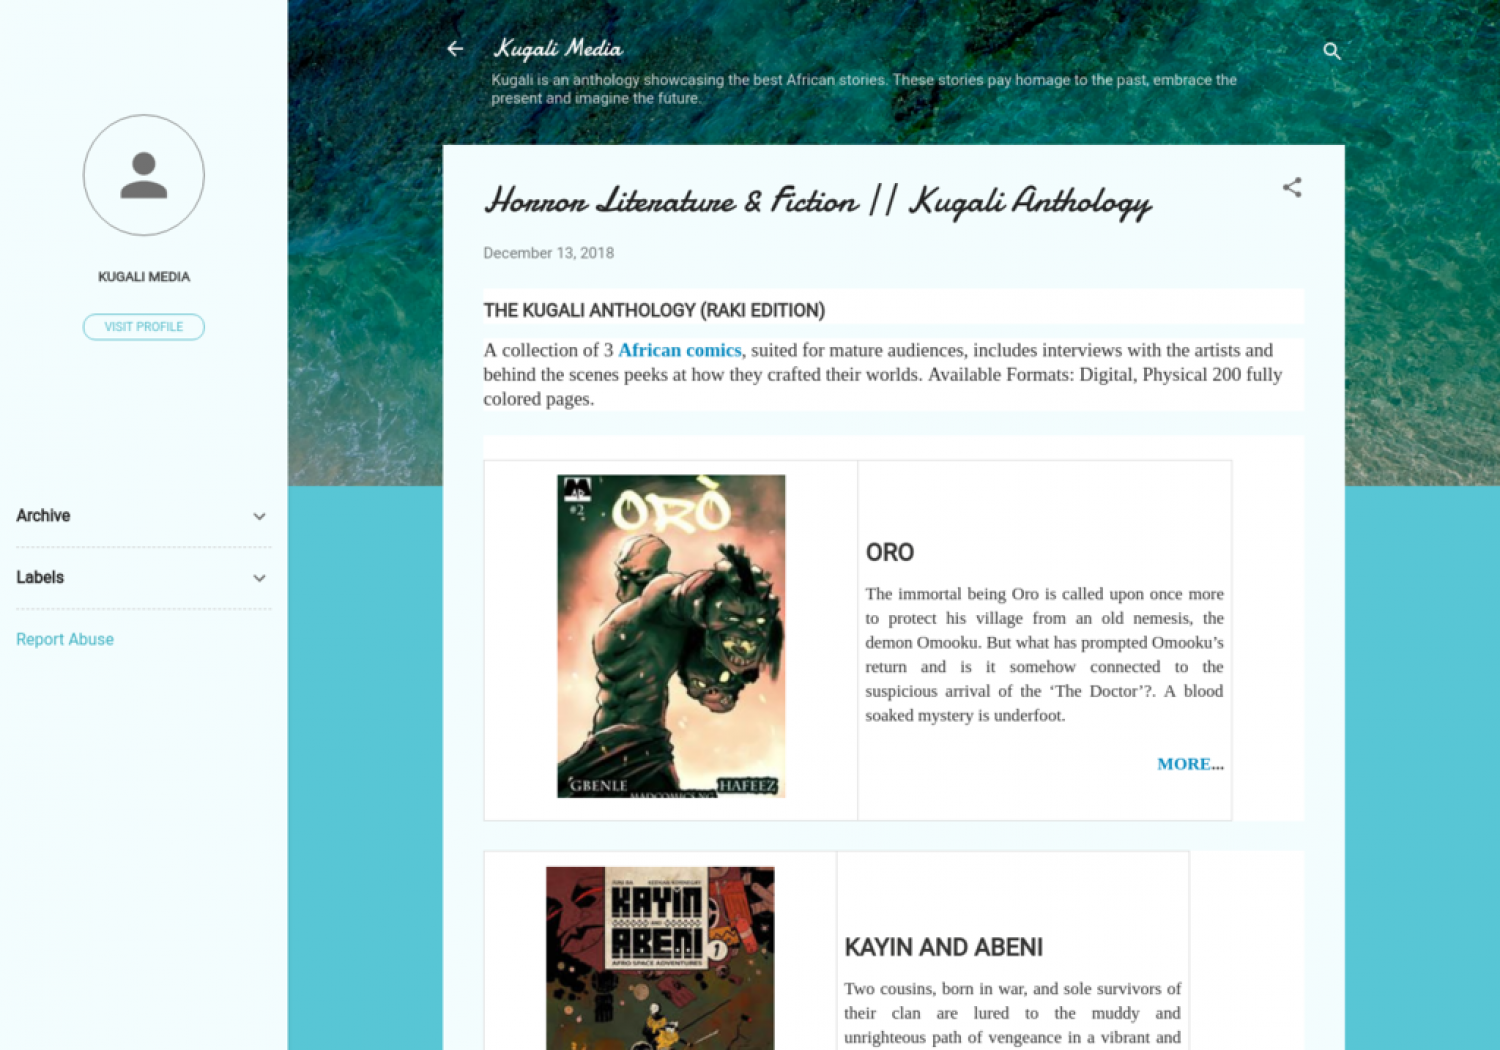 Horror Literature & Fiction || Kugali Anthology Infographic